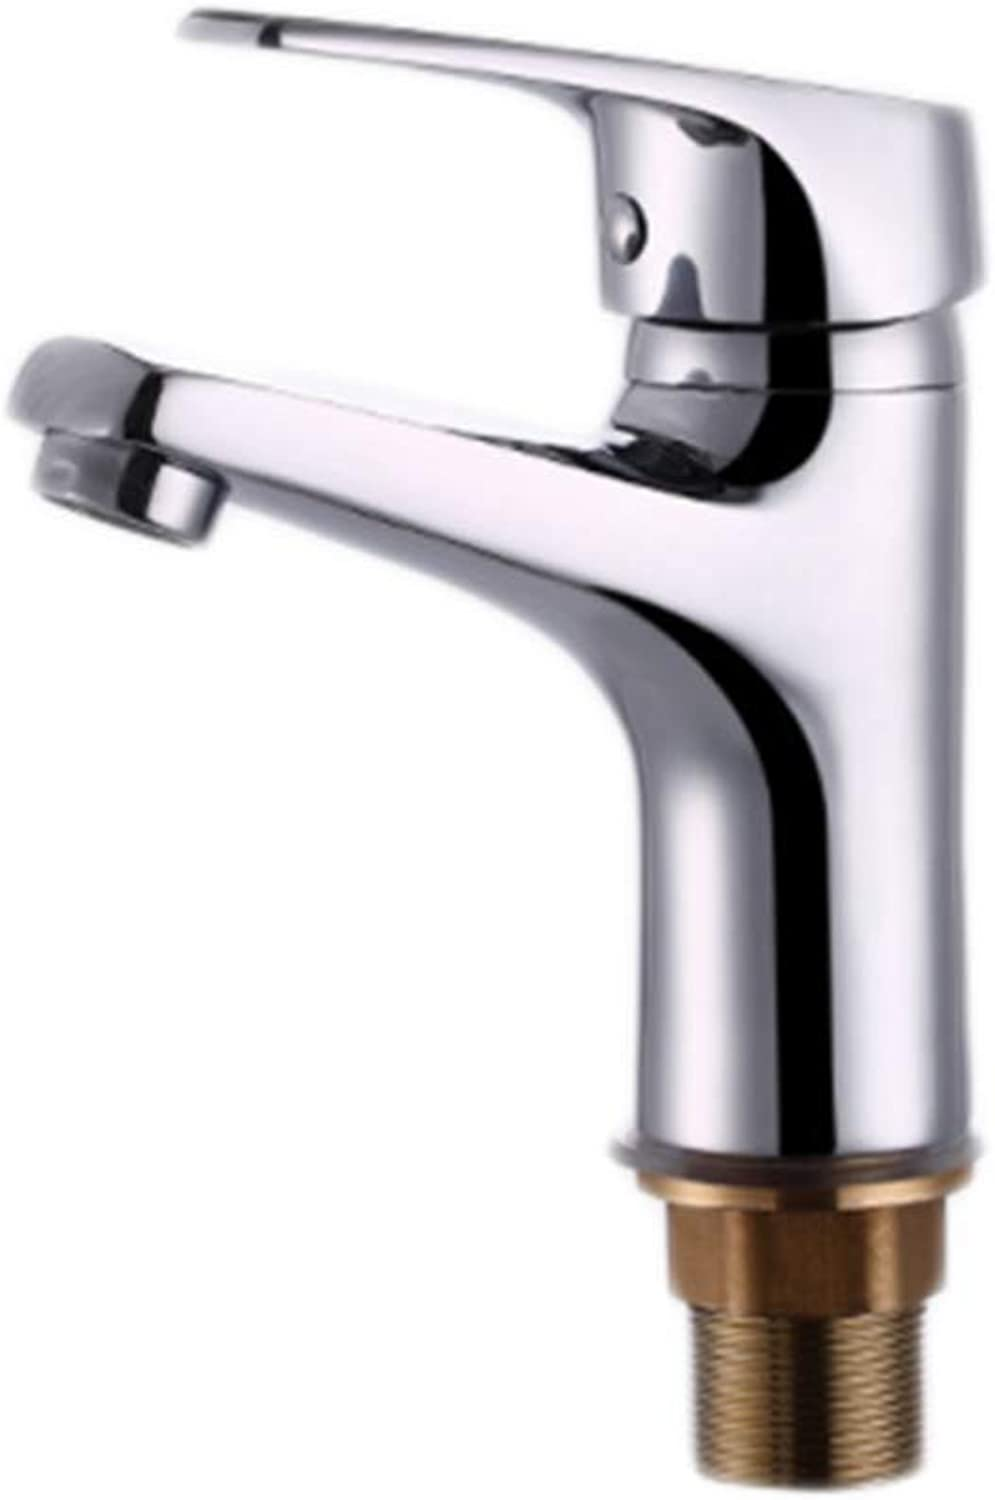 Taps Kitchen Basin Mixer Pull Out Mixersink Mixer Tap with Top Quality Bathroom Basin Faucet of Zinc Alloy Hot Cold Water Tap